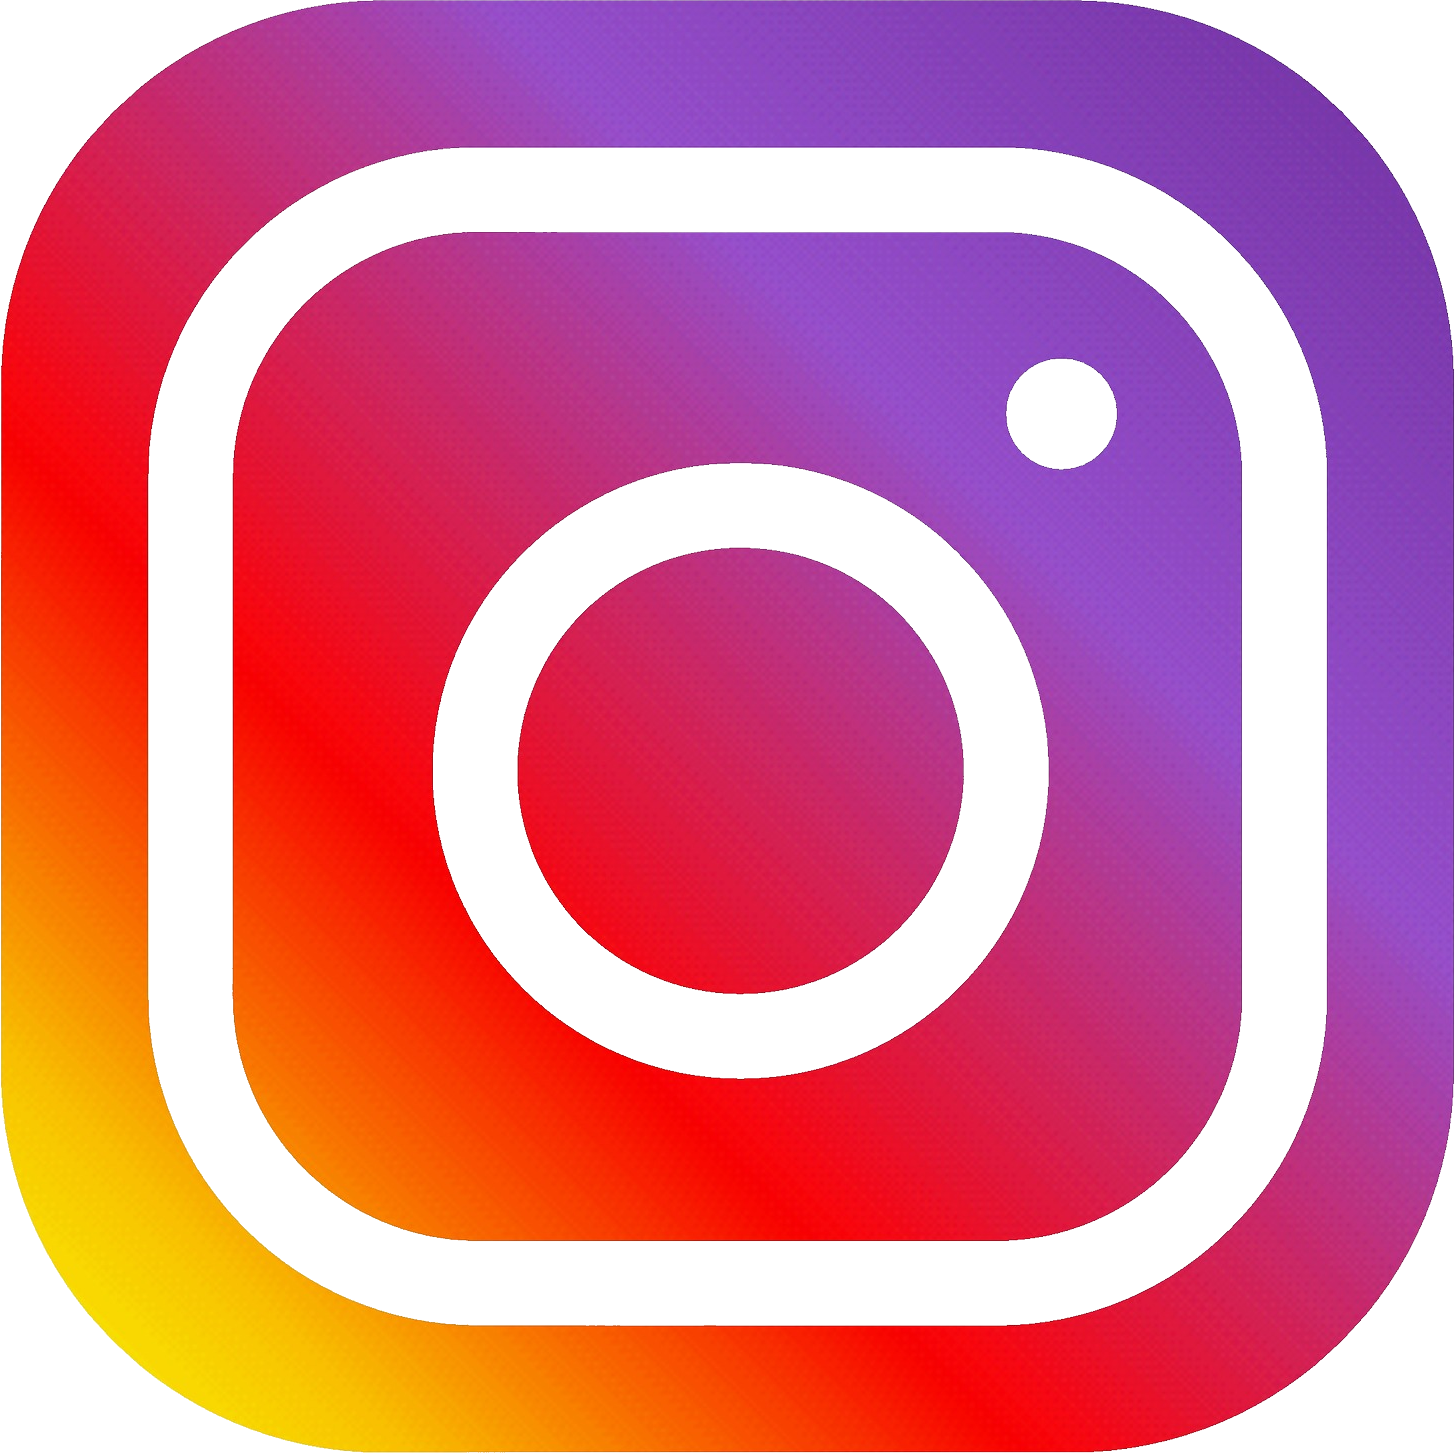 Logotipo de Instagram